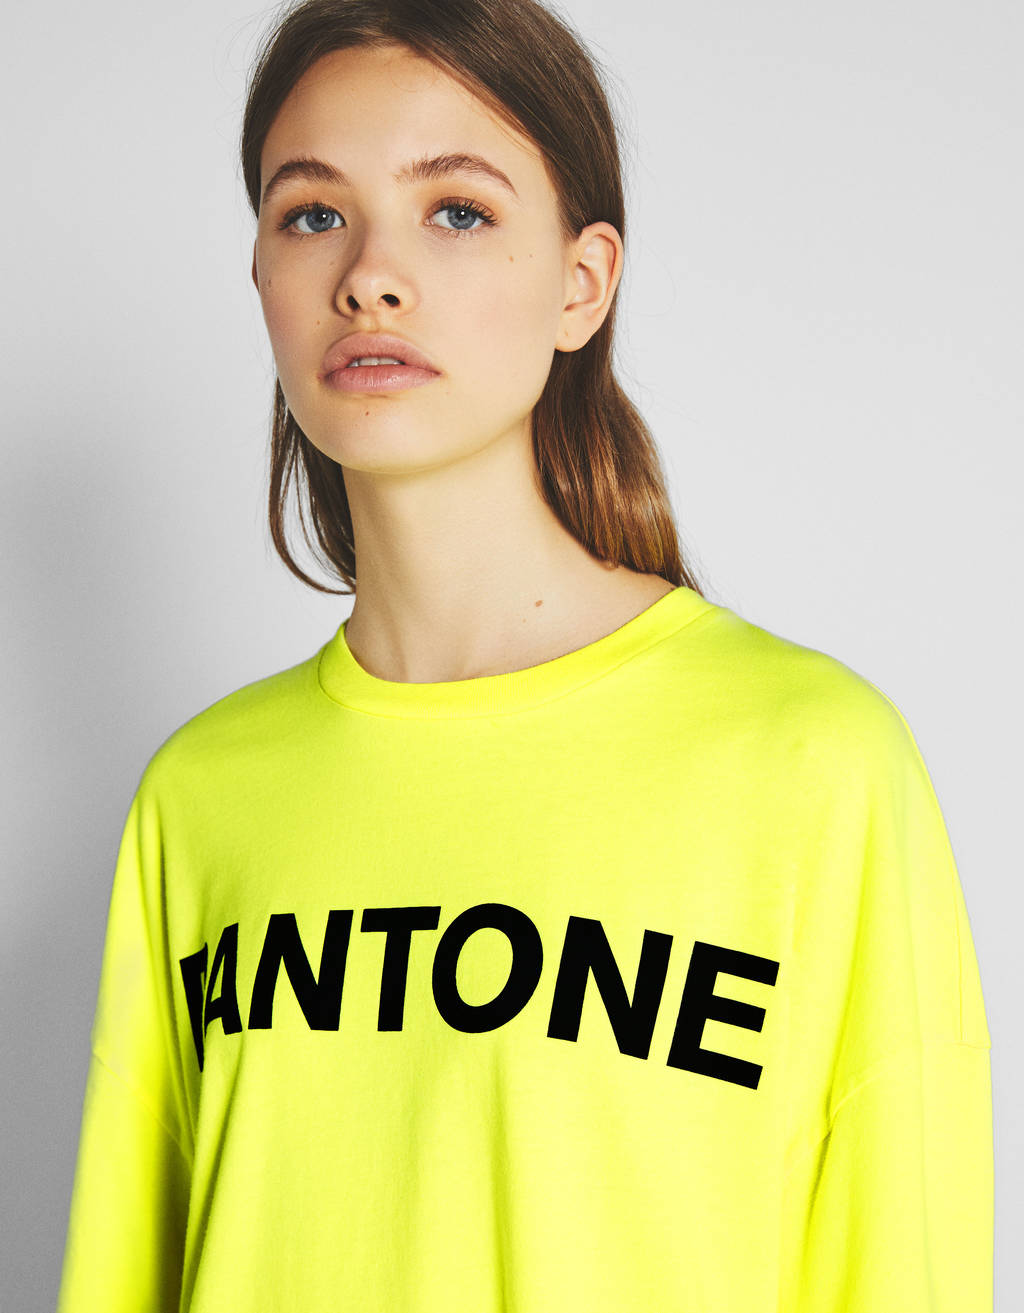 16fdb00c3 Bershka + PANTONE dad fit T-shirt - Best Sellers - Bershka United ...